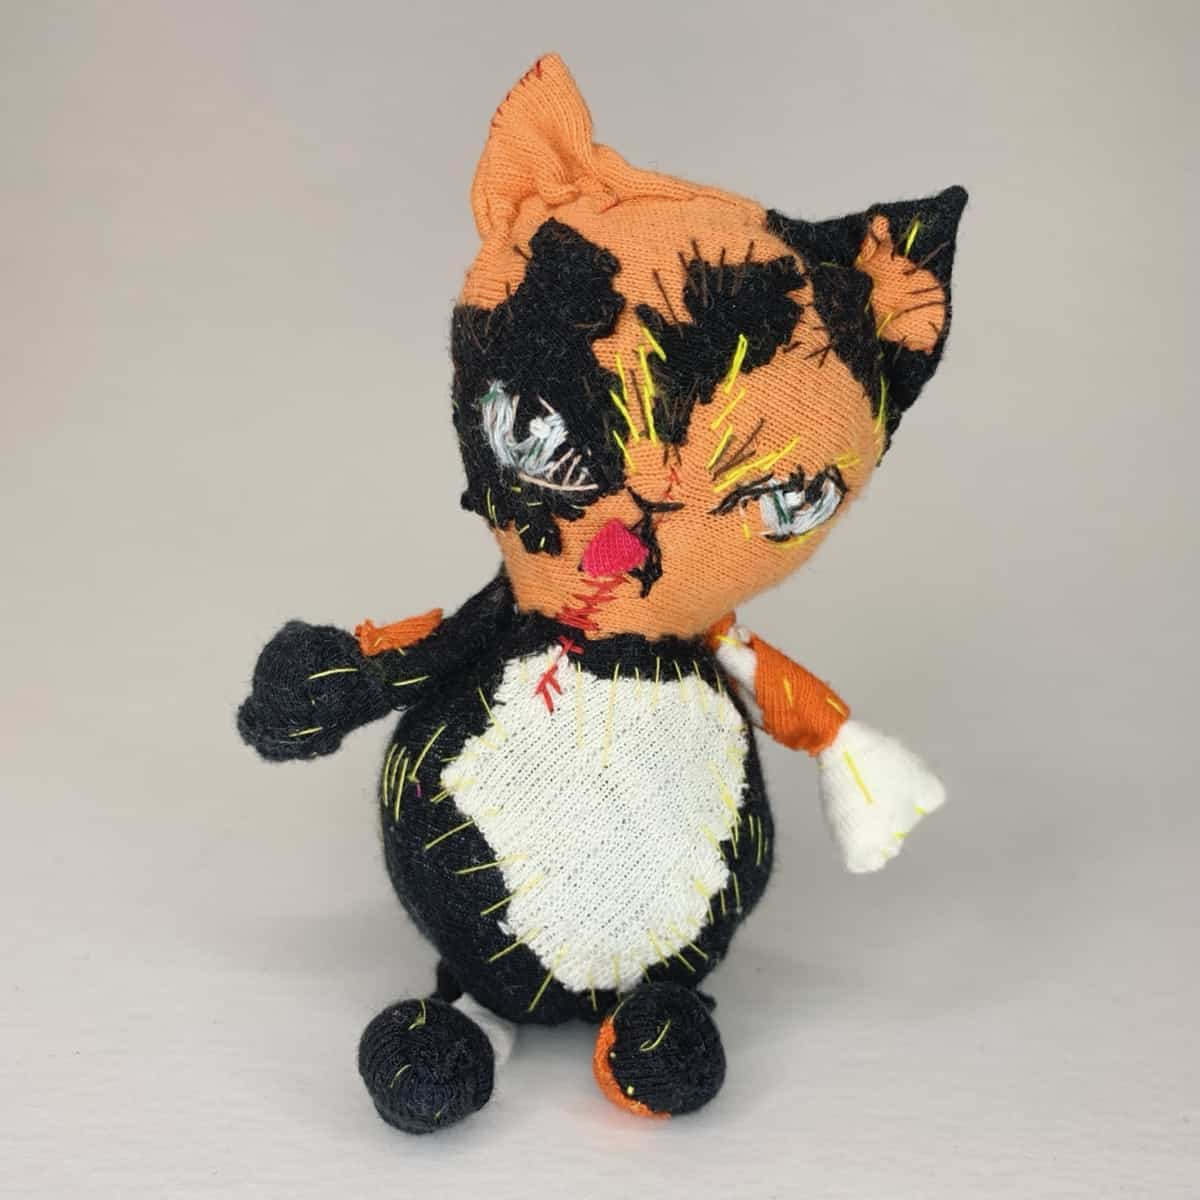 tongue out blue eyes cat made using recycled textile waster